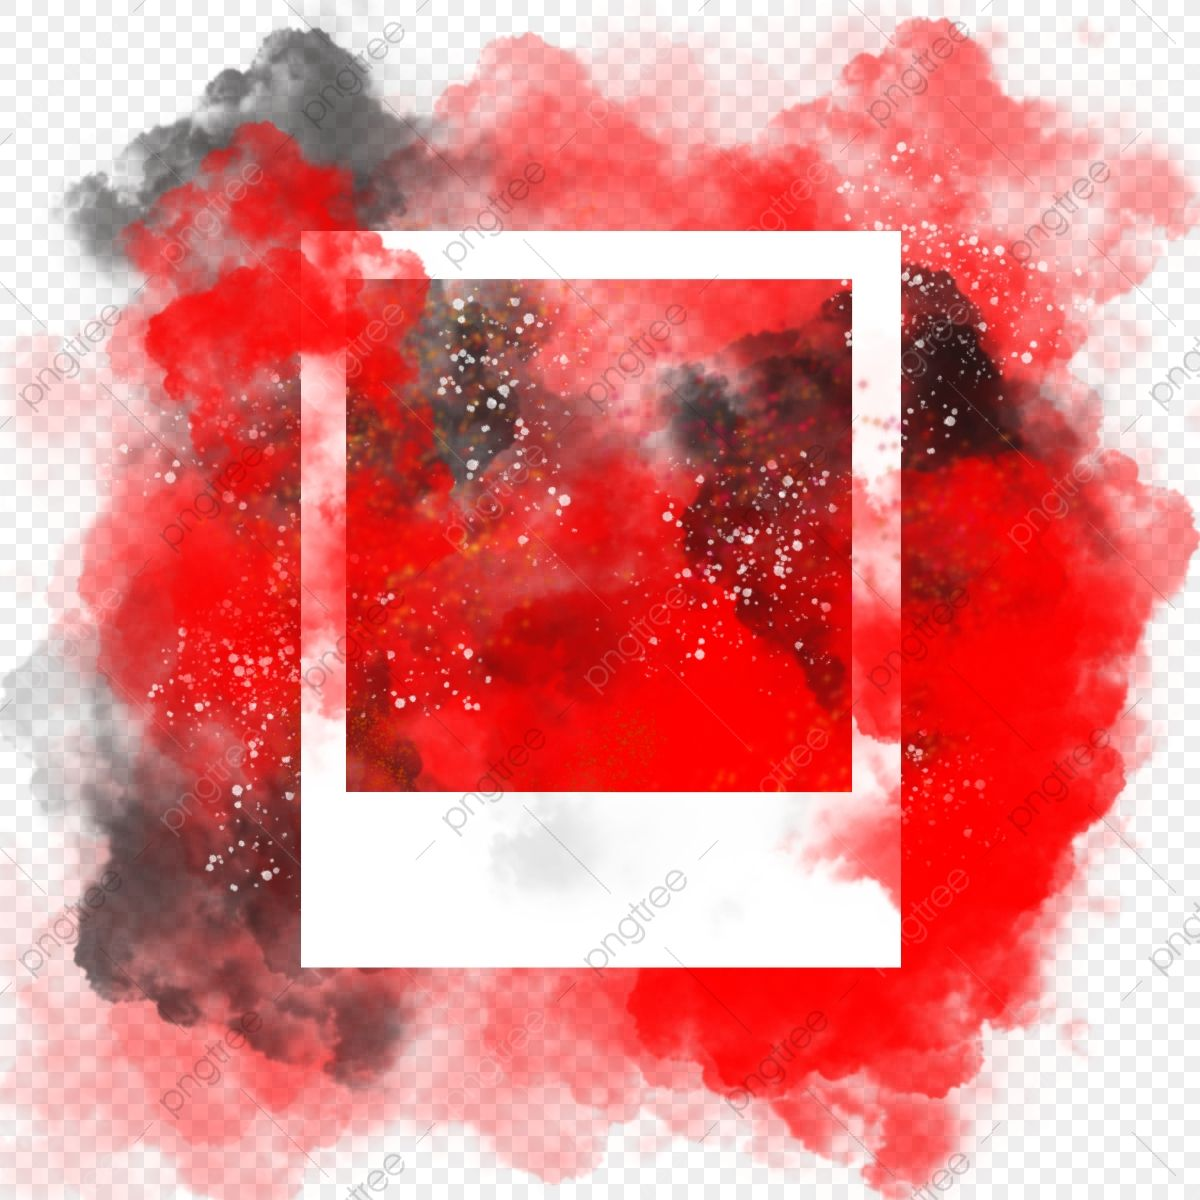 Super Cool Red Black Smoke Effect Red Smoke Black Effect Red Png Transparent Clipart Image And Psd File For Free Download Red And Black Background Red Smoke Black Smoke